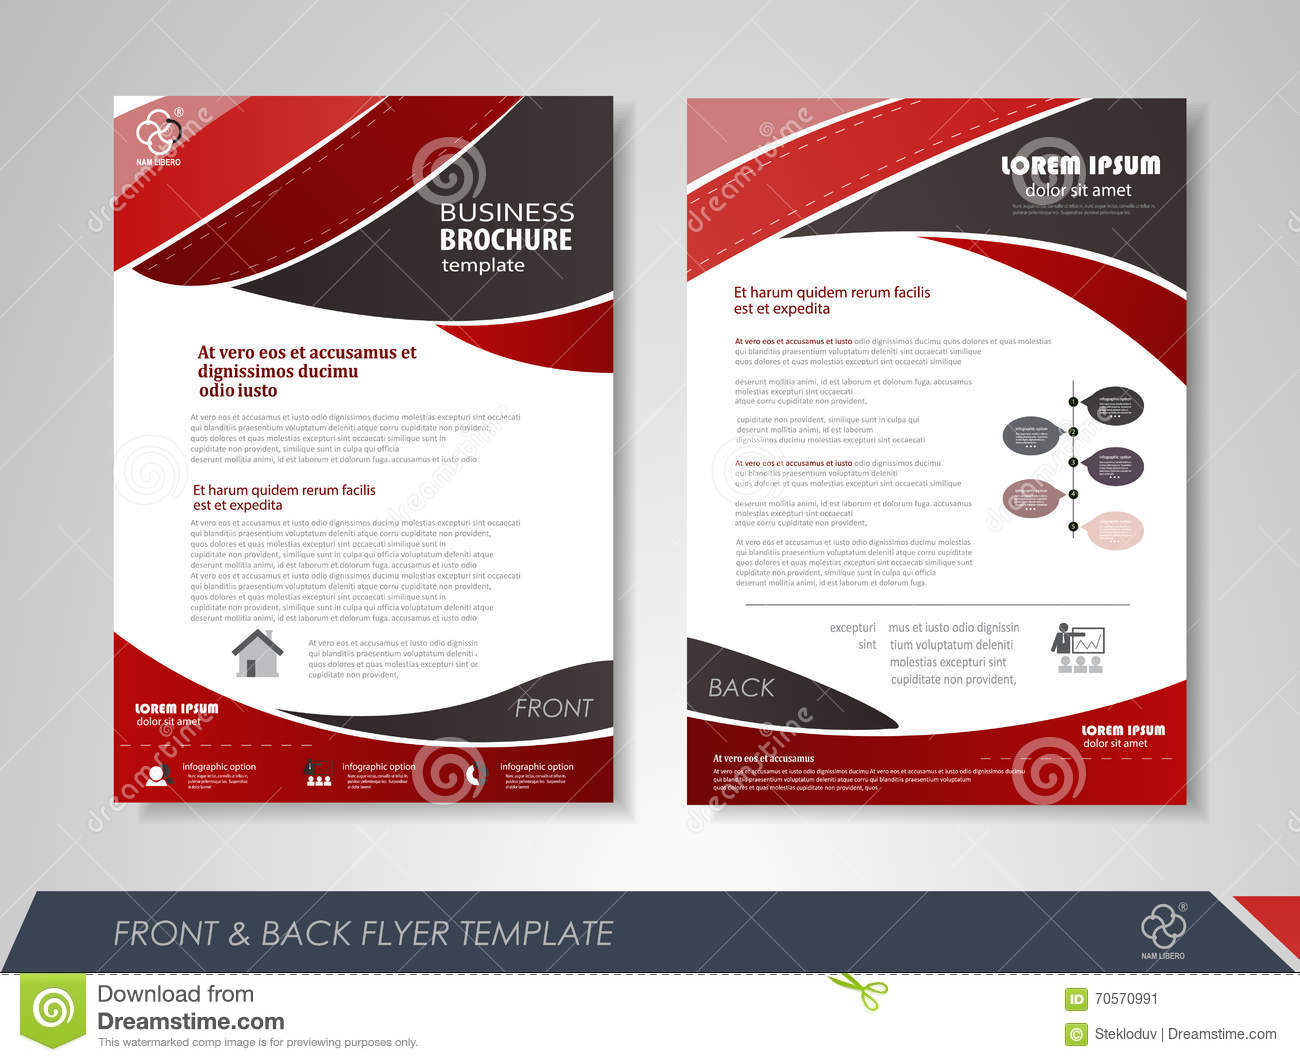 graphic design and printing business plan pdf